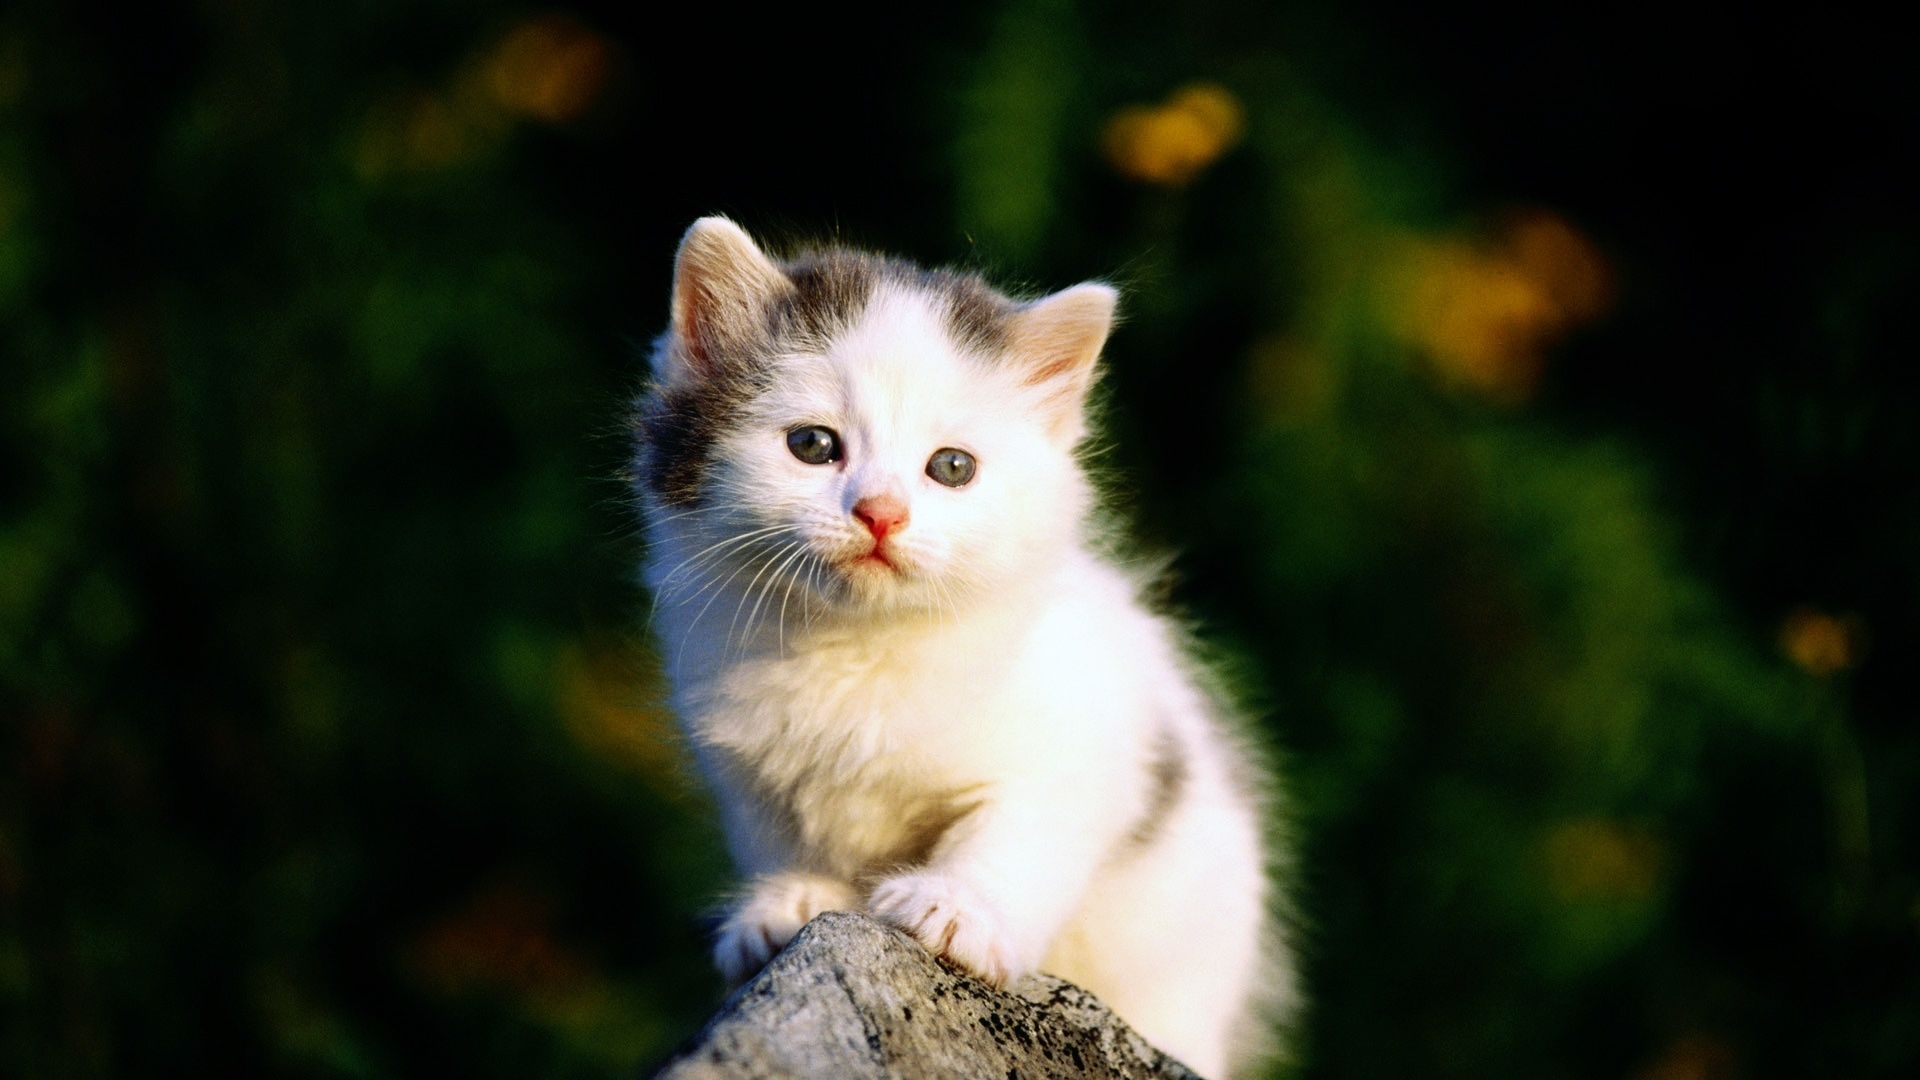 Beautiful cute and sweet cat wallpapers are waiting for your to 1920x1080